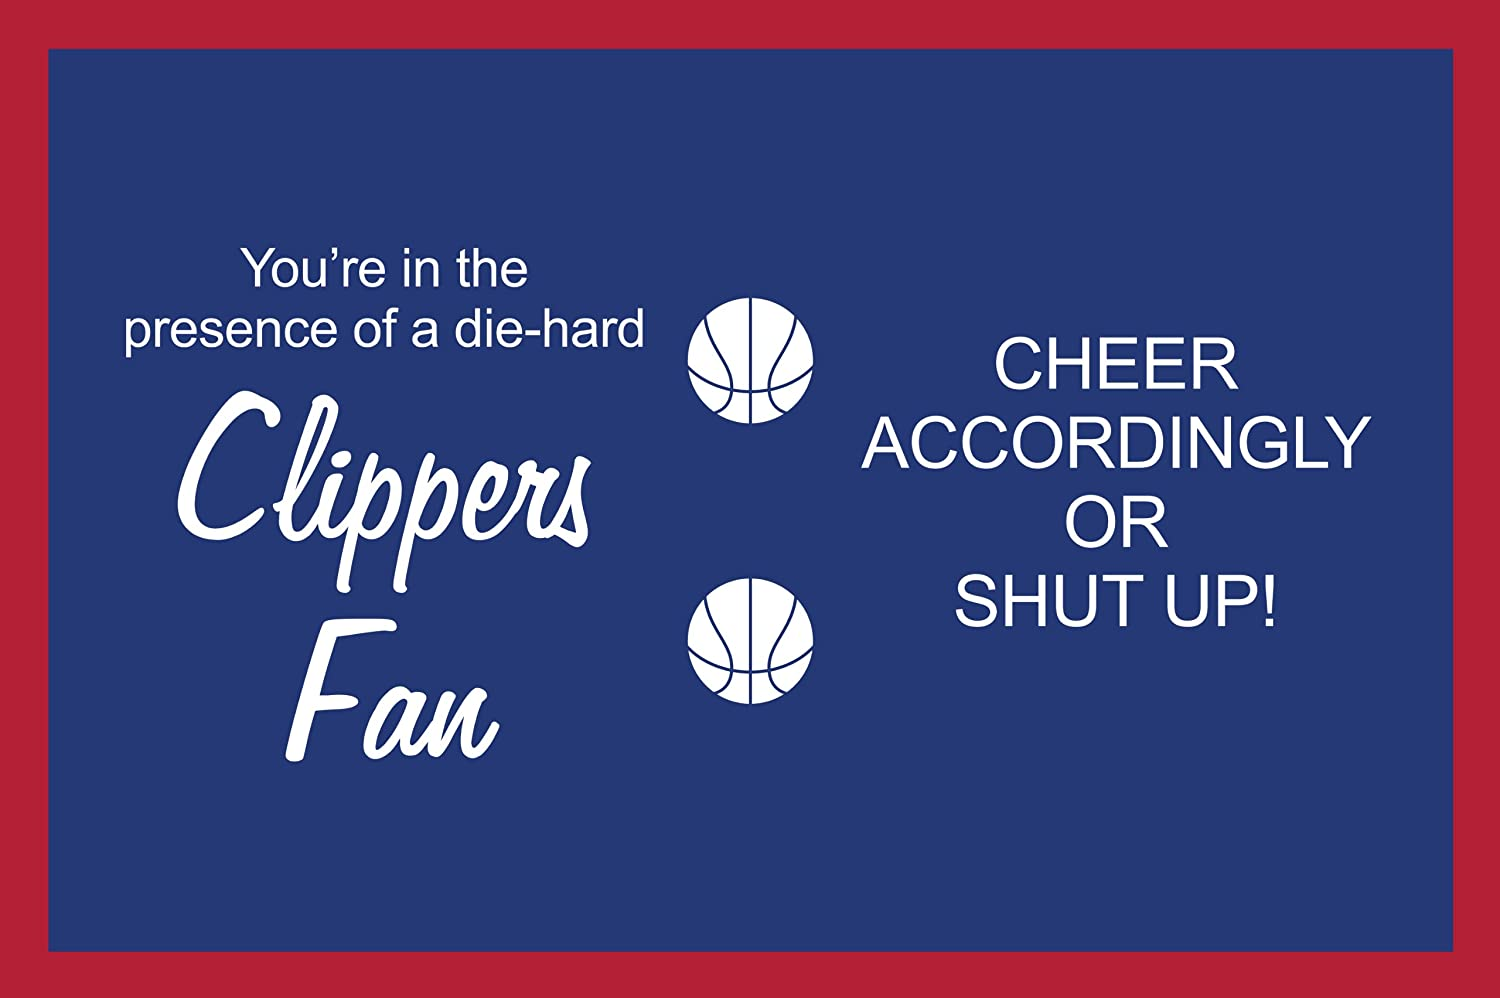 16-Ounce Tree Free Tree-Free Greetings sg24151 Clippers Basketball Fan Sip N Go Stainless Steel Lined Travel Tumbler